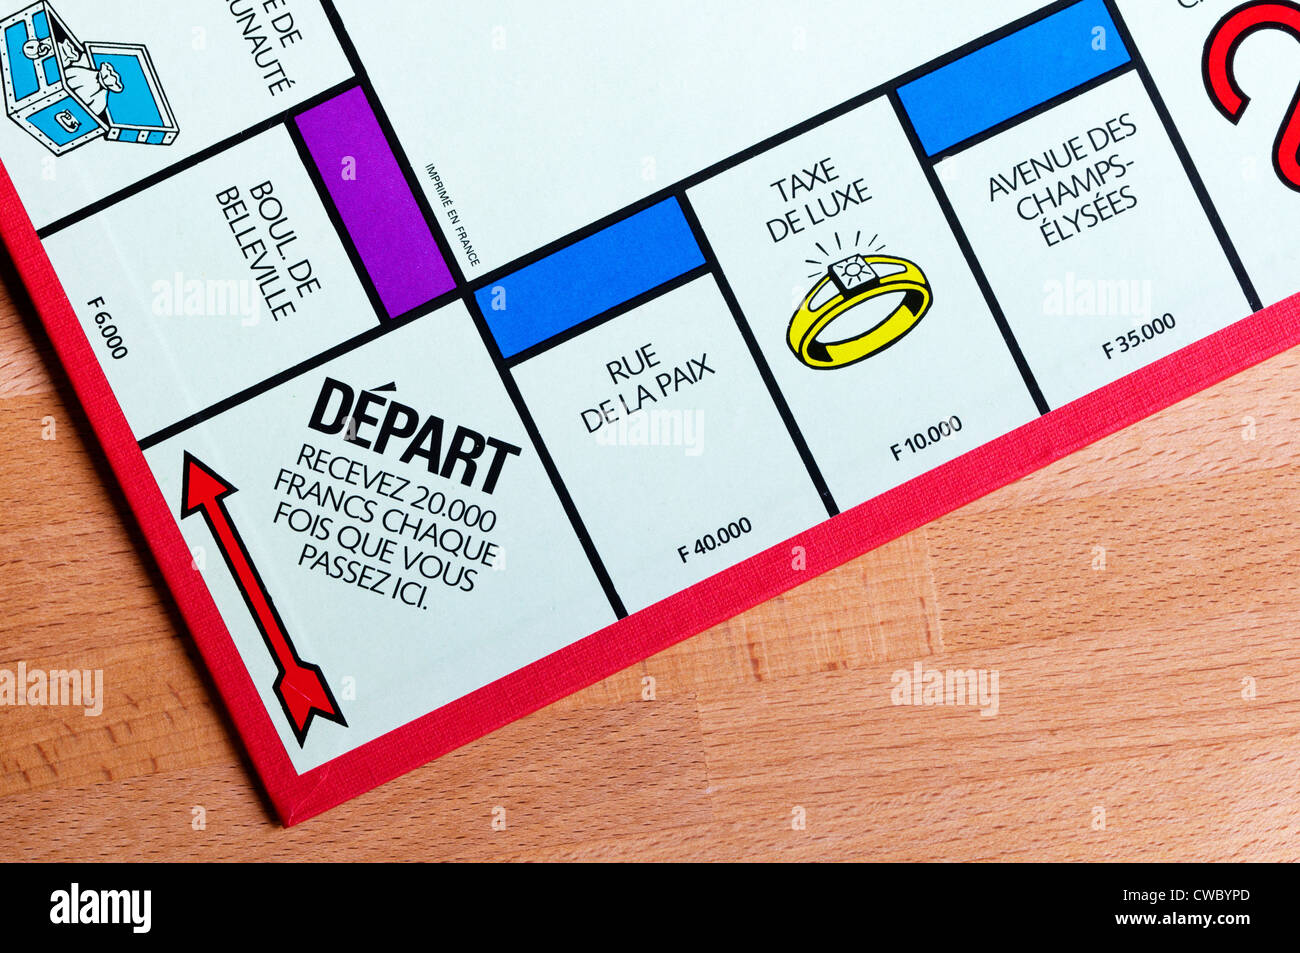 French Monopoly board showing the Go or Depart position. - Stock Image